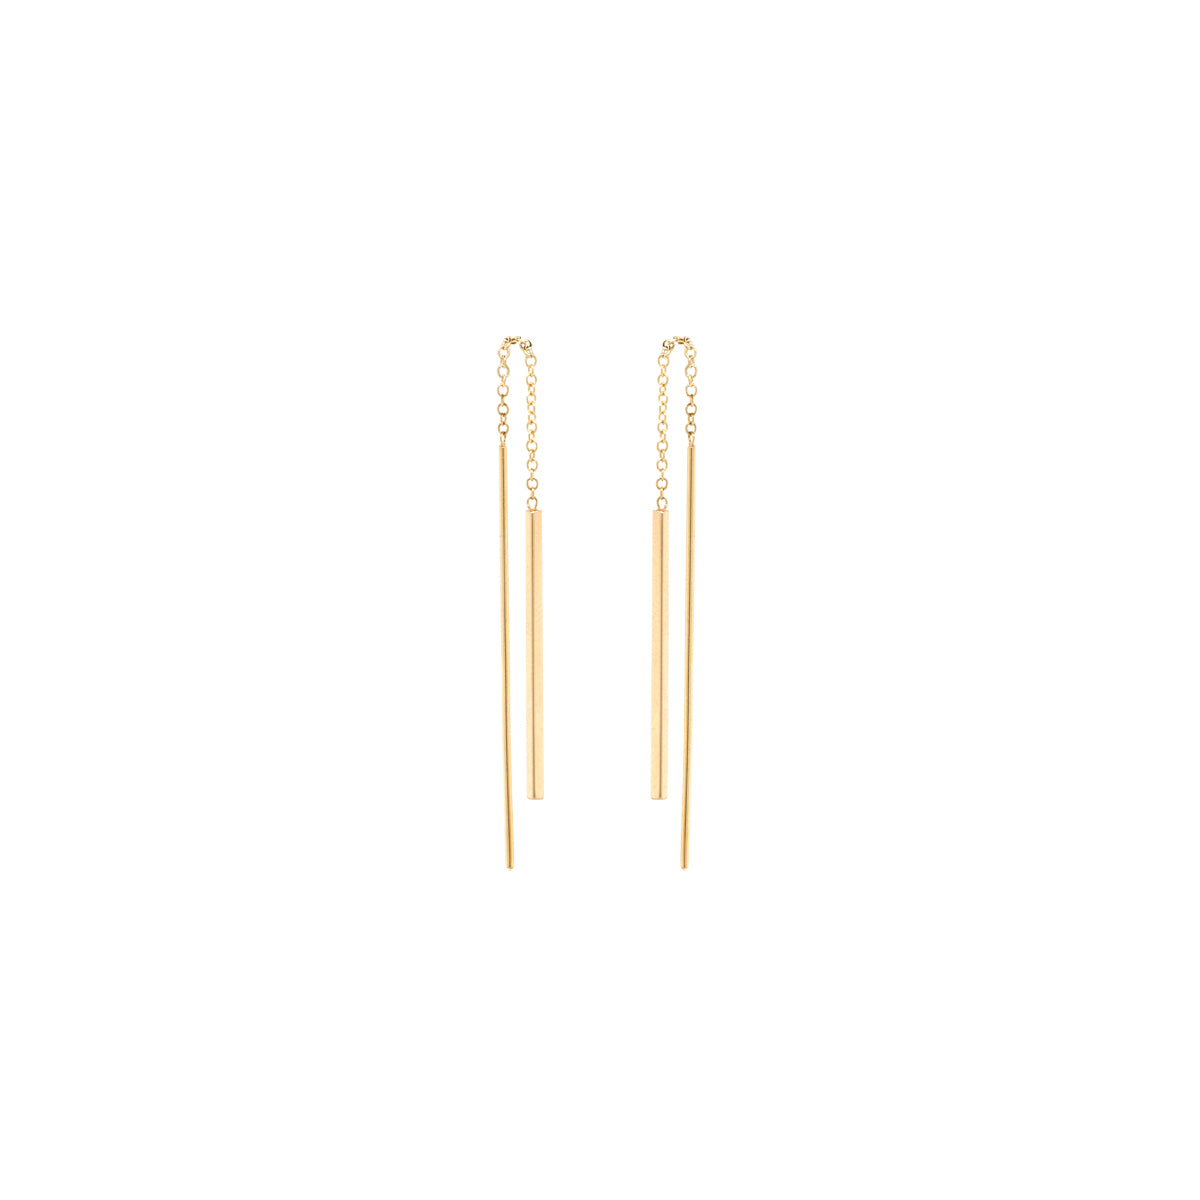 14k short bar threader earrings